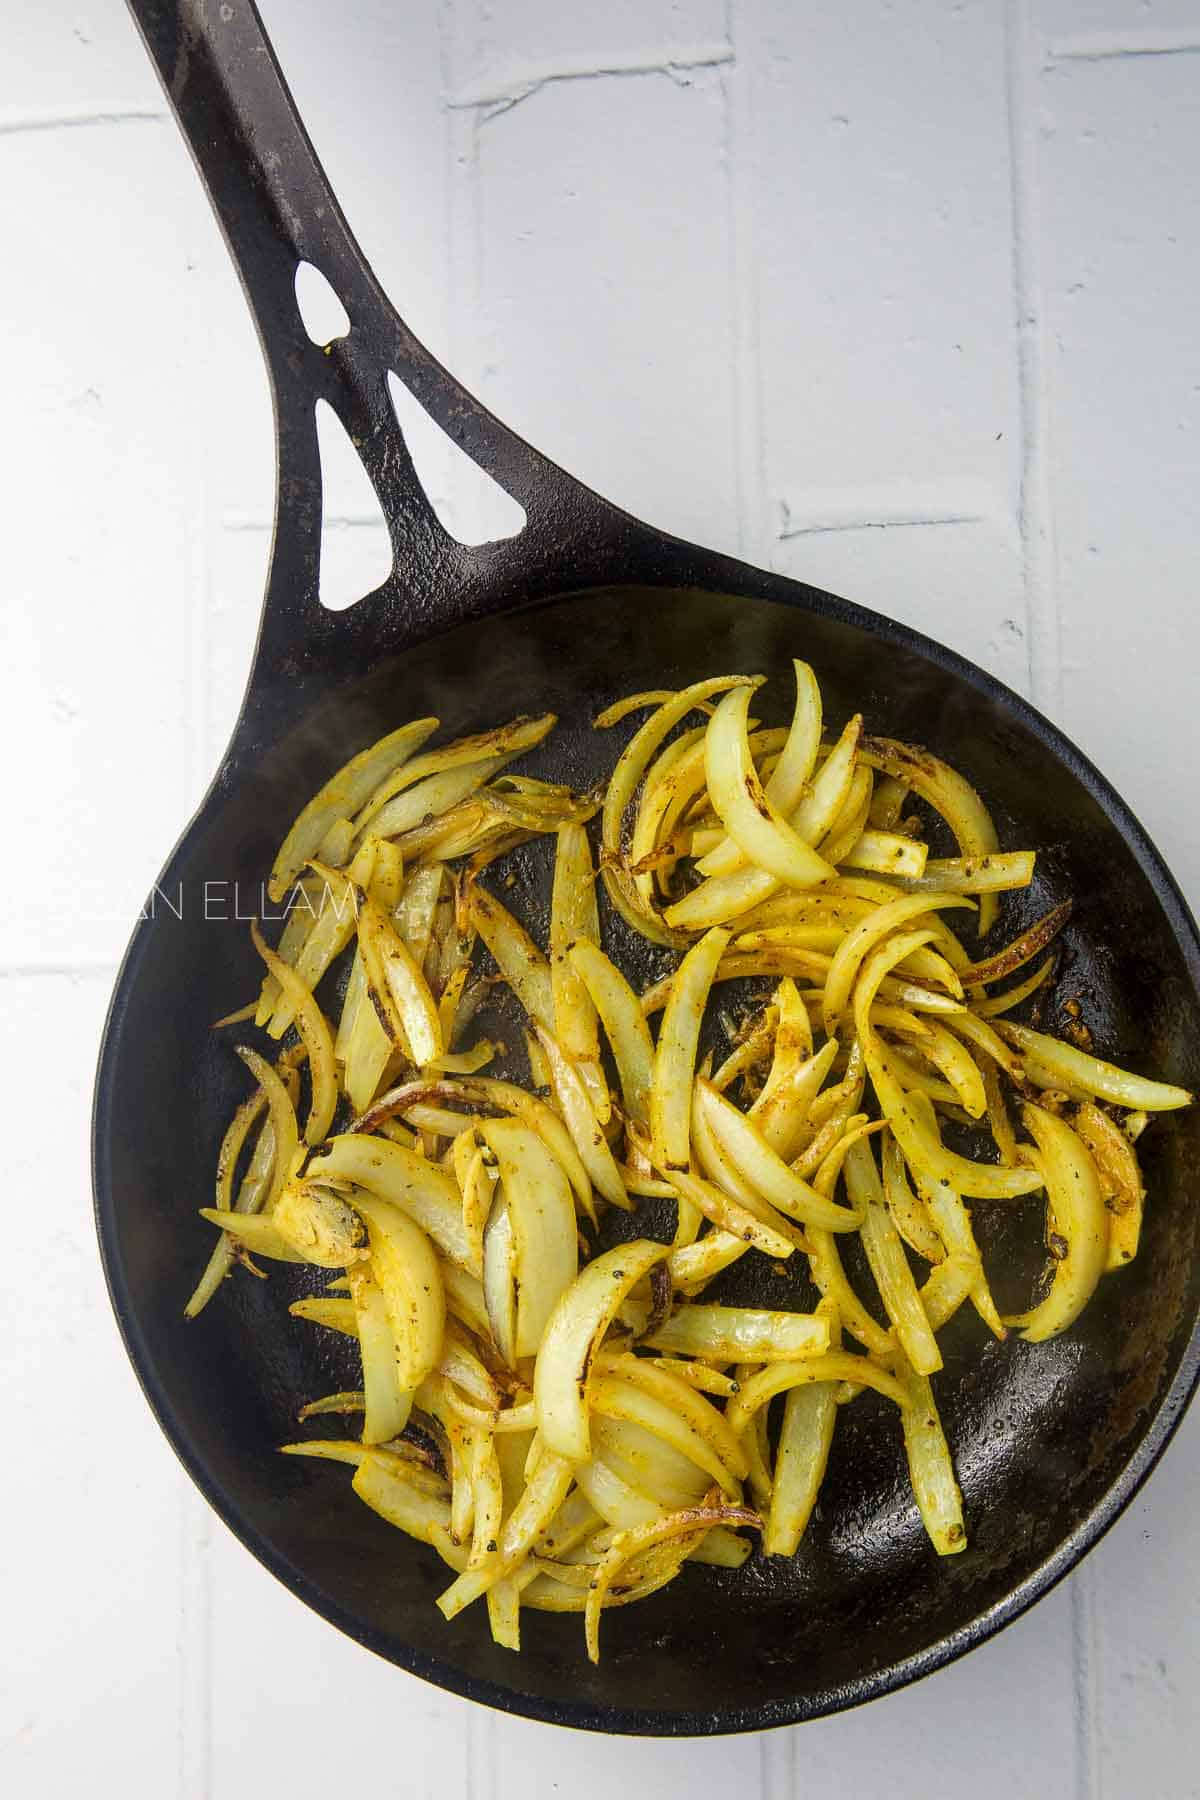 Onions frying in a cast iron pan.